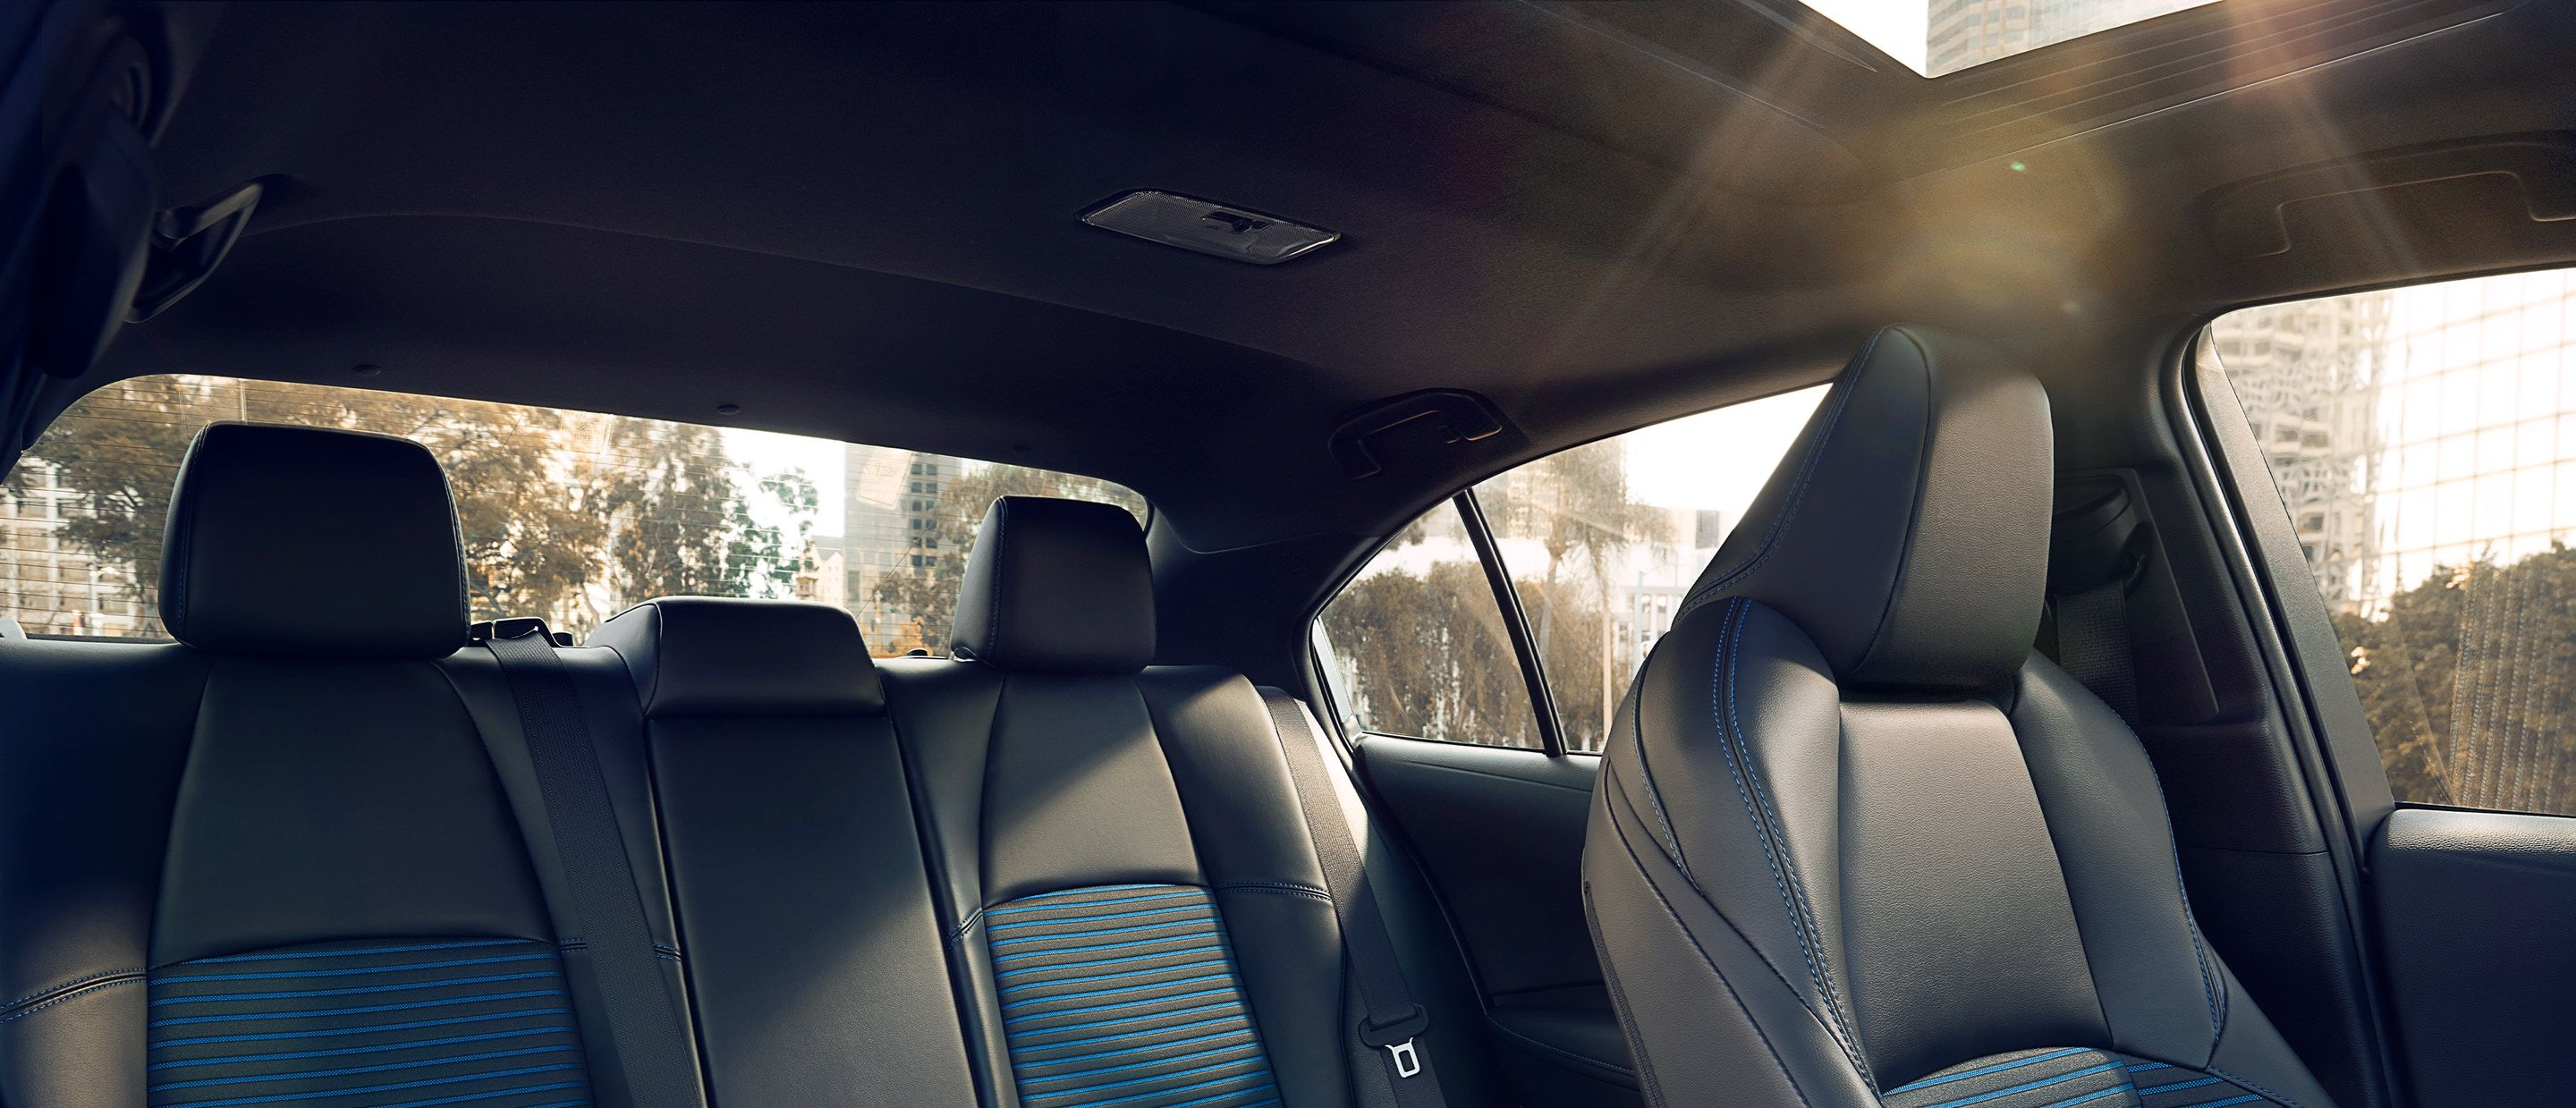 The Spacious Cabin of the 2020 Corolla